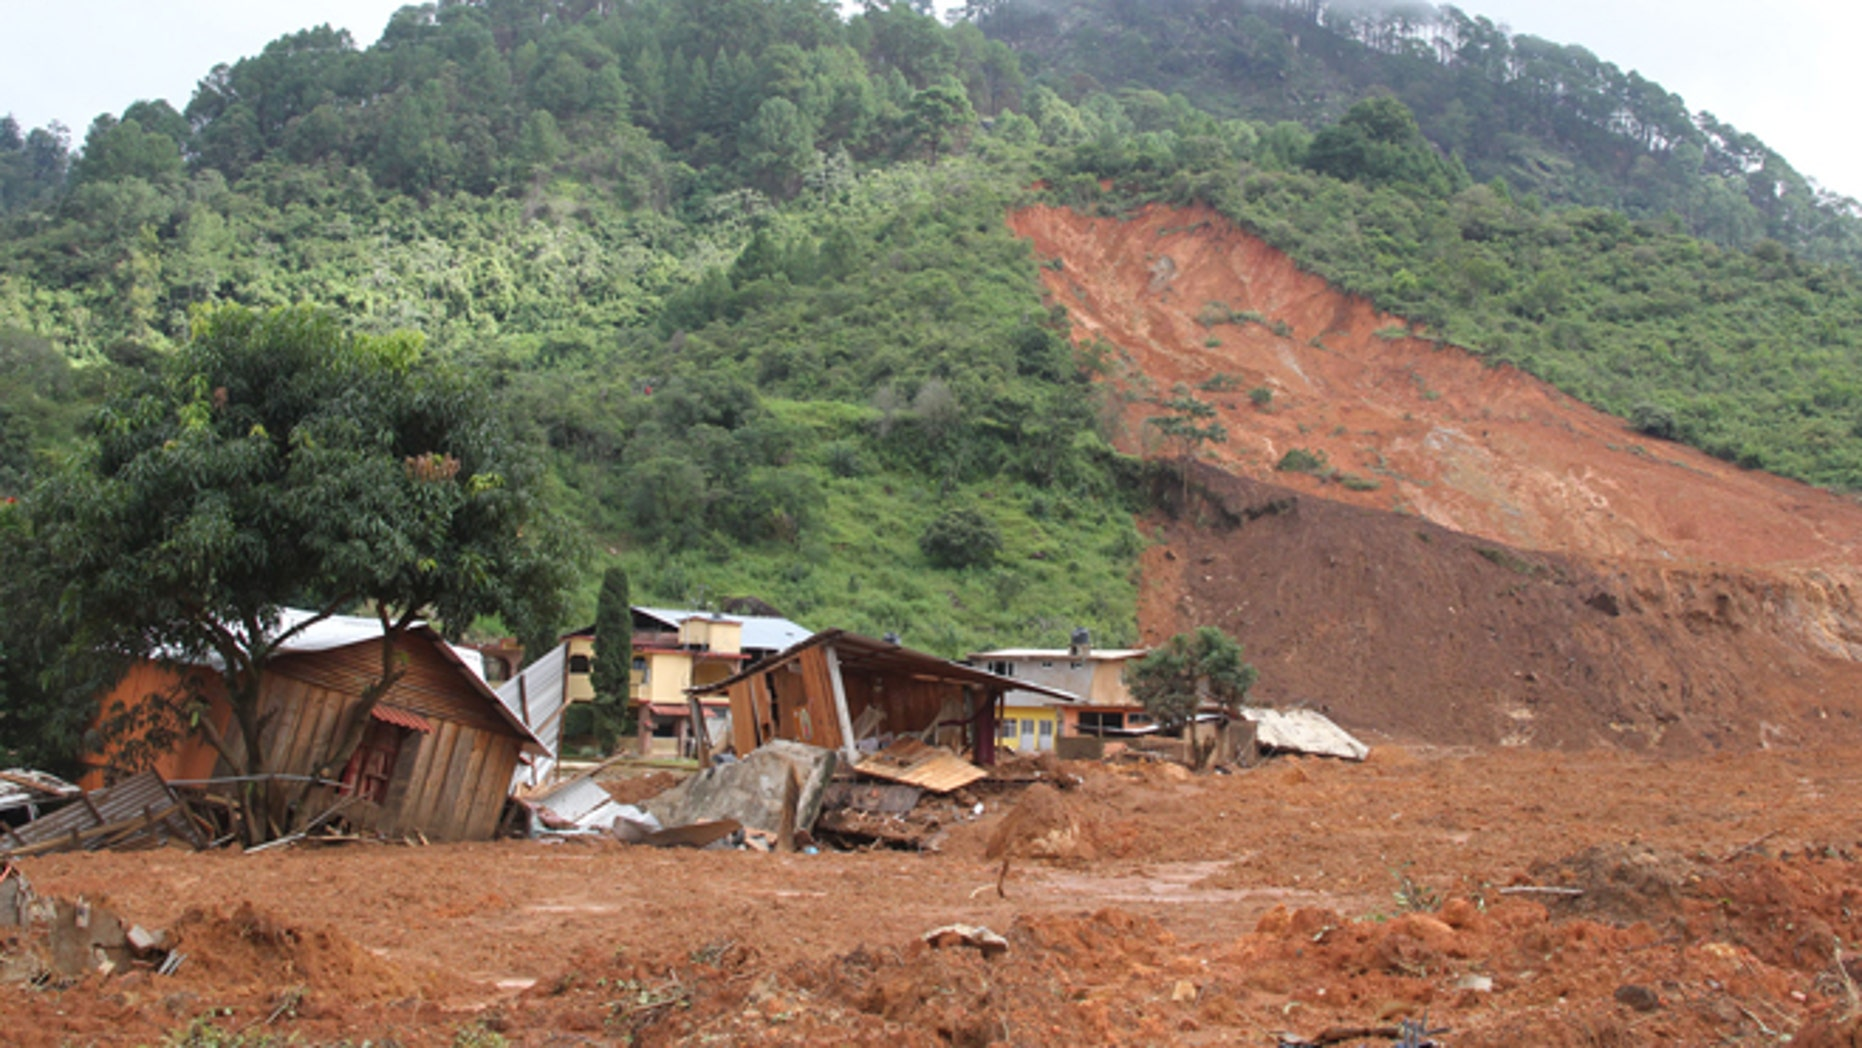 In this photo released by Mexico's Secretary of the Interior, structures lay in ruins at the site of a landslide in the village of La Pintada, Mexico, Thursday, Sept. 19, 2013. La Pintada was was affected by the twin paths of Tropical Storm Manuel and Hurricane Ingrid, which simultaneously pounded both of Mexico's coasts over the weekend, triggering floods and landslides across coastal and inland areas. (AP Photo/Mexico's Secretary of the Interior)